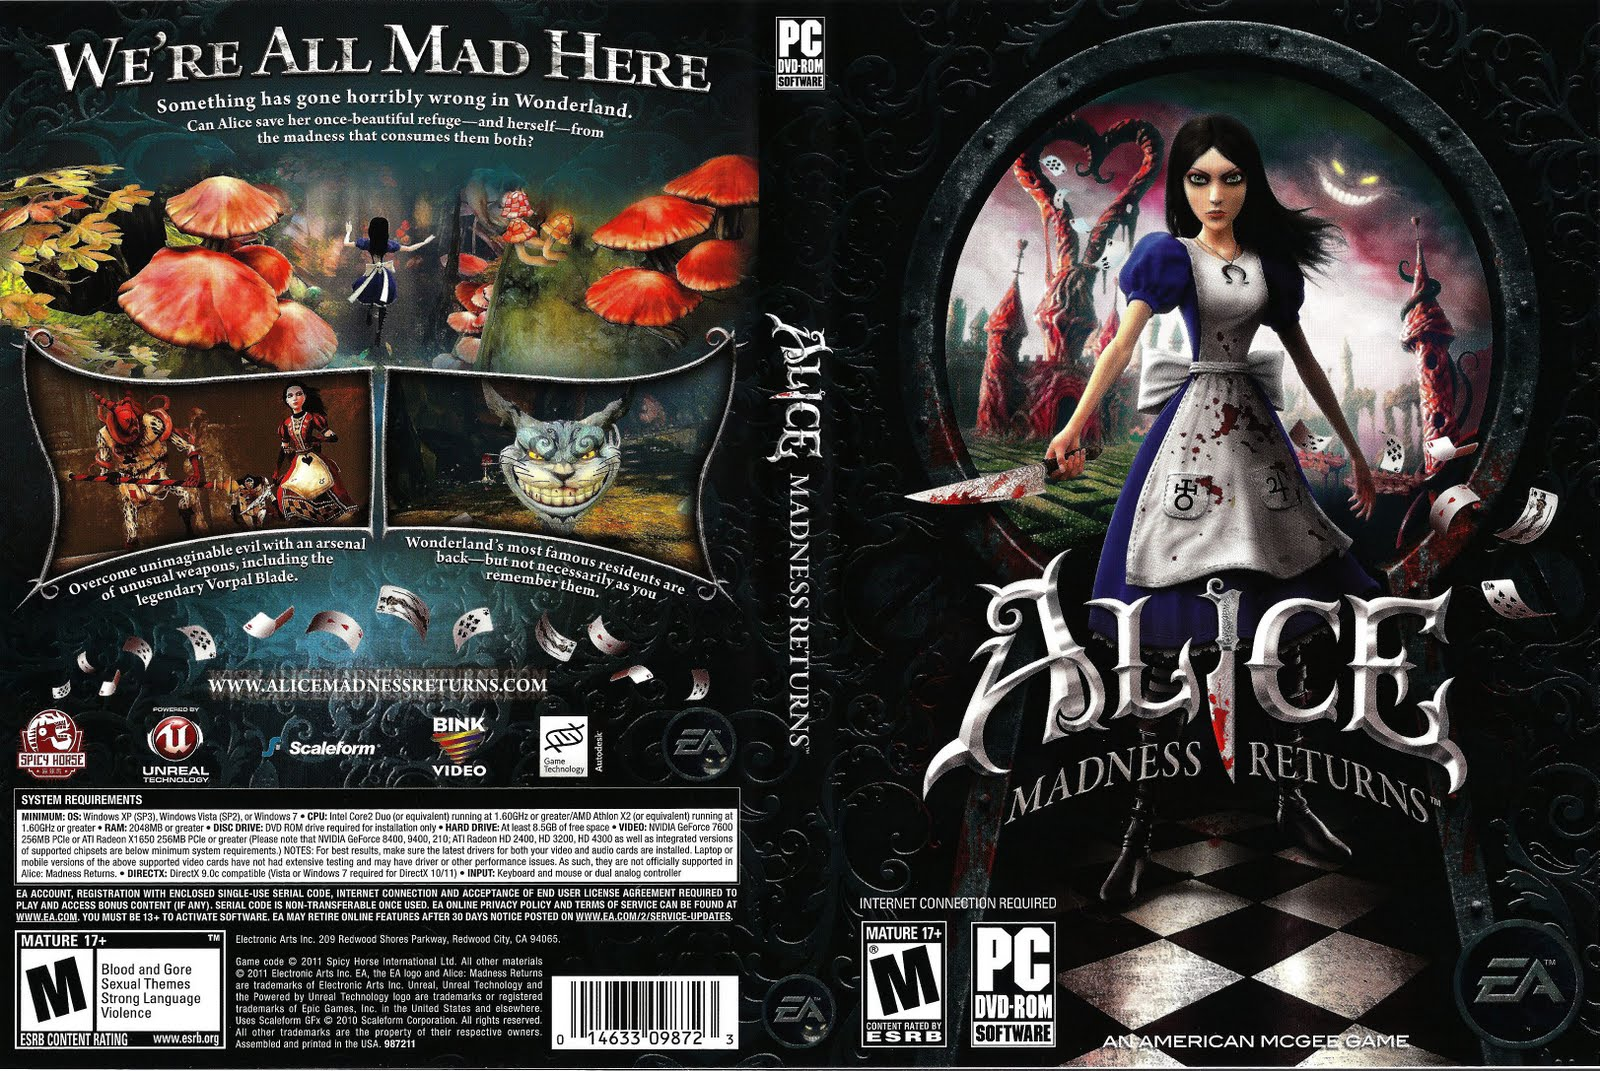 Alice madness returns nud patch ps cartoon girlfriends